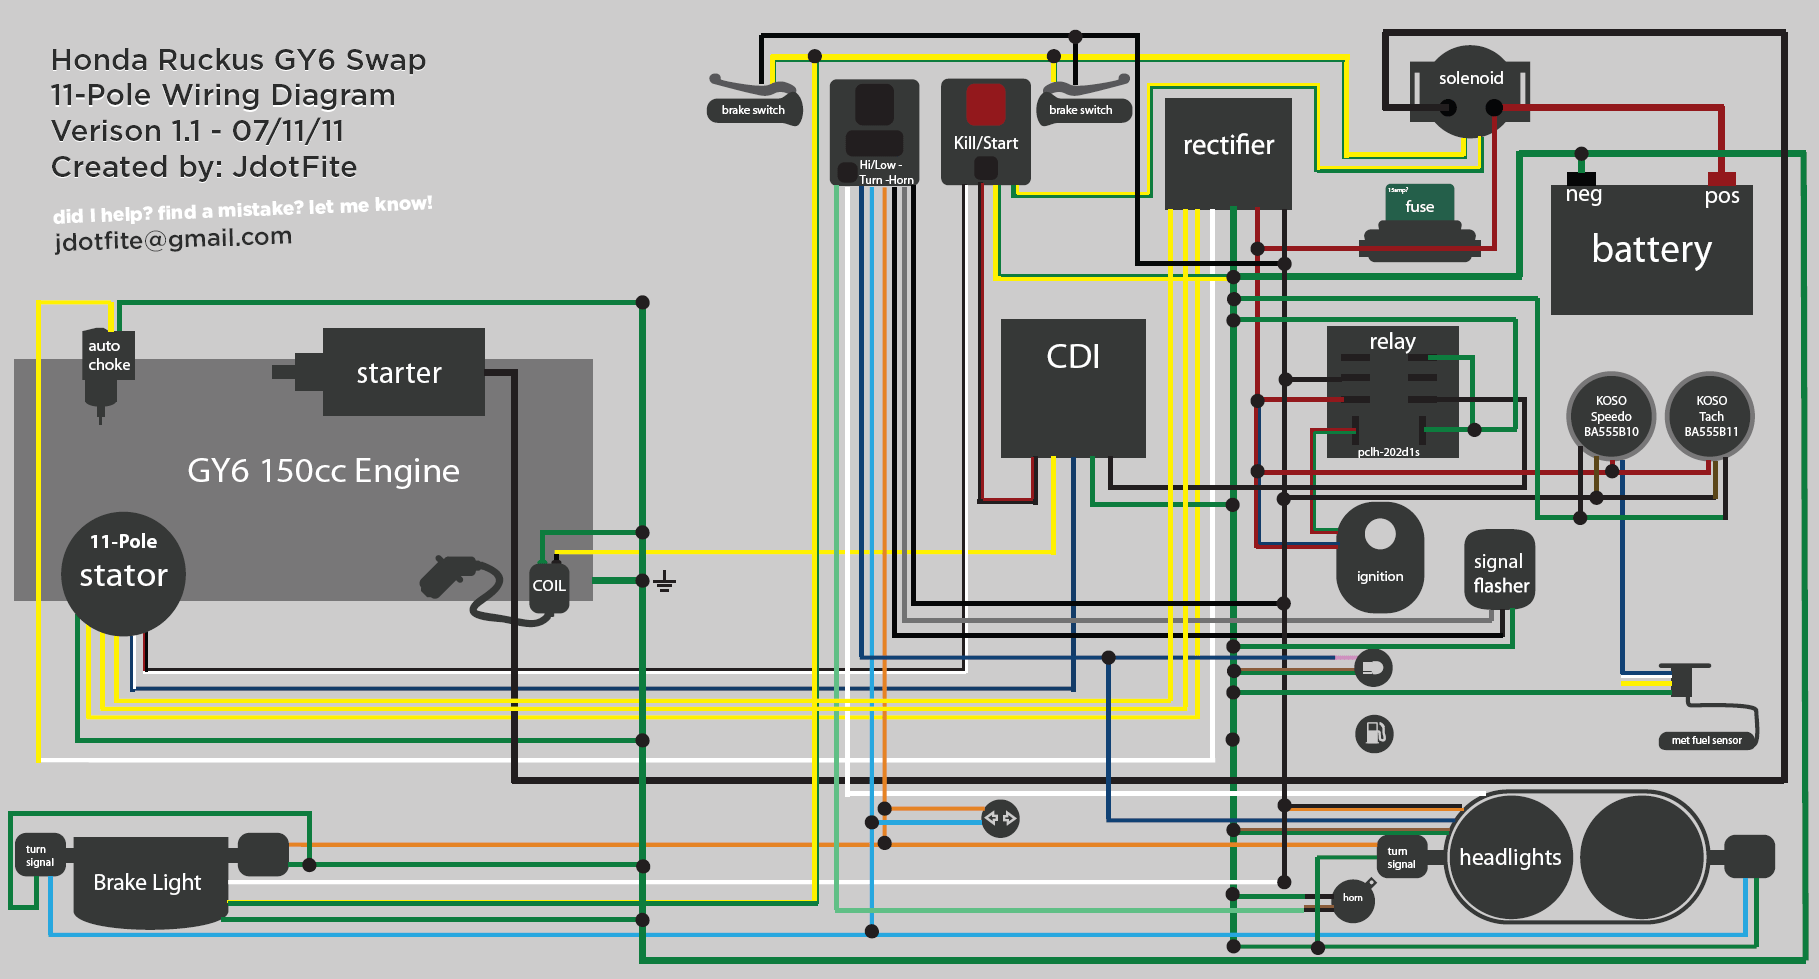 ruckus gy6 wiring diagram gy6 lighting diagram gy6 regulator wiring diagram \u2022 wiring tao tao 50 scooter wiring diagram at nearapp.co